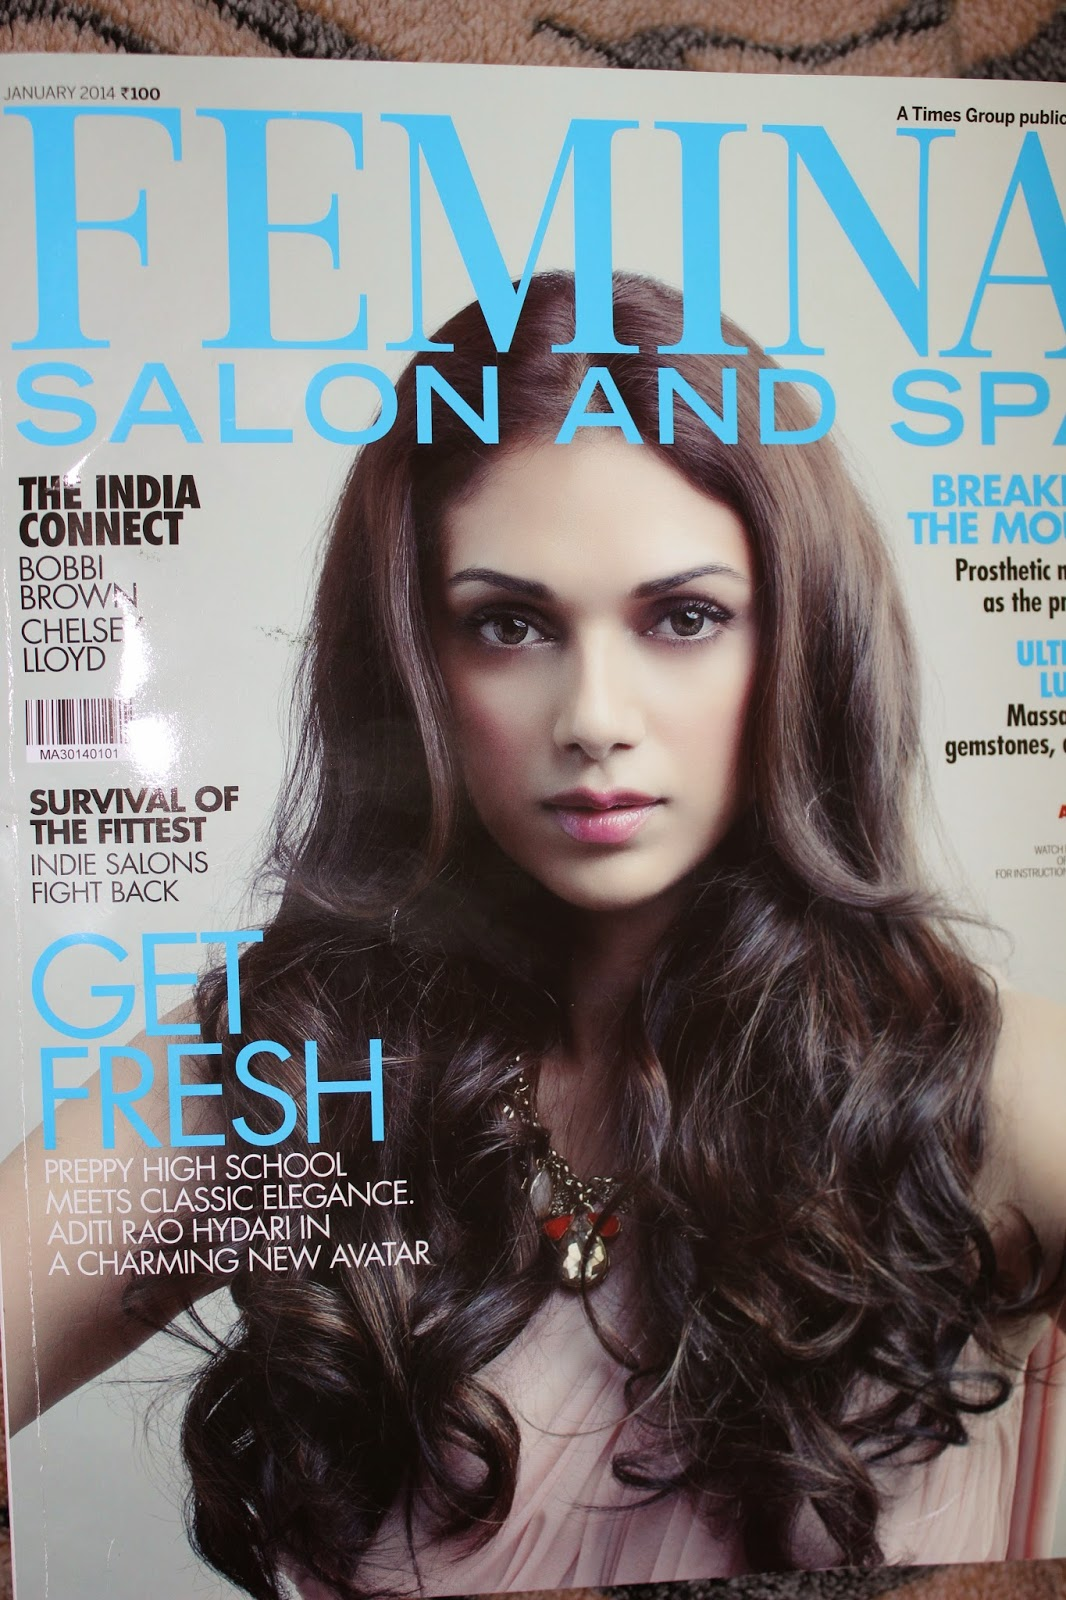 Femina Salon and Spa Januay 2014